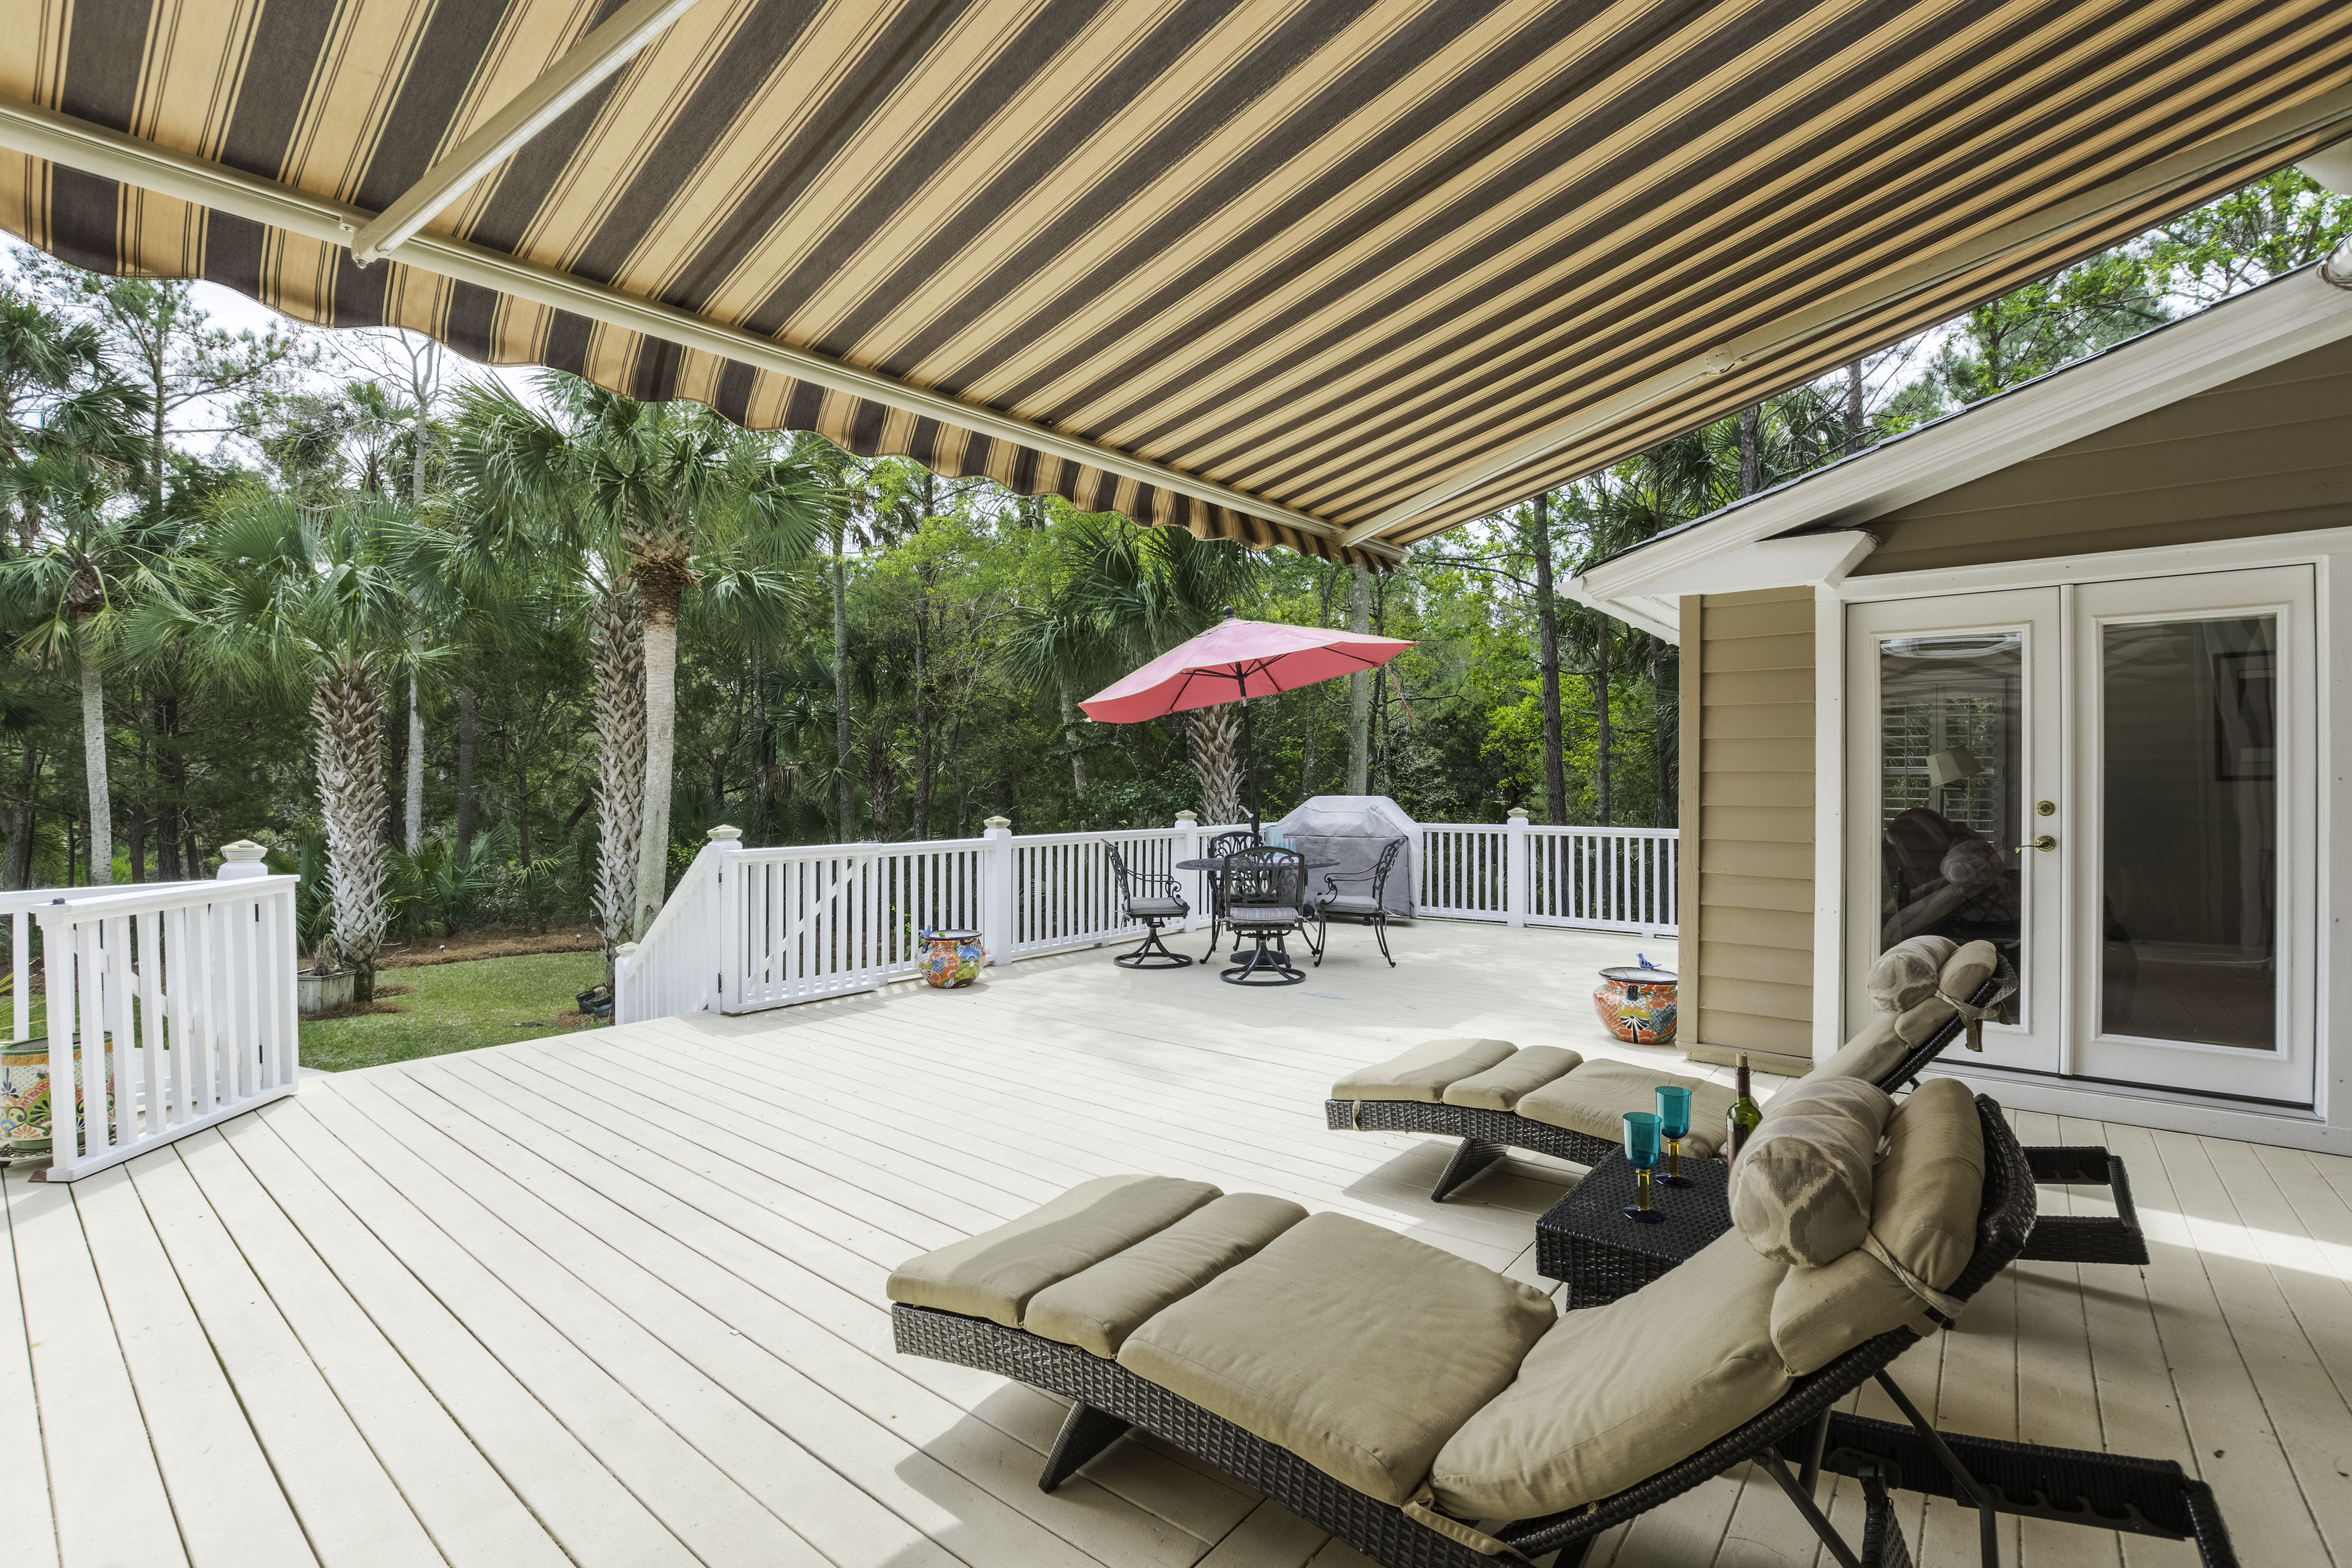 3315 Cottonfield Dr., Mount Pleasant Marsh Front Home For Sale With a Pool